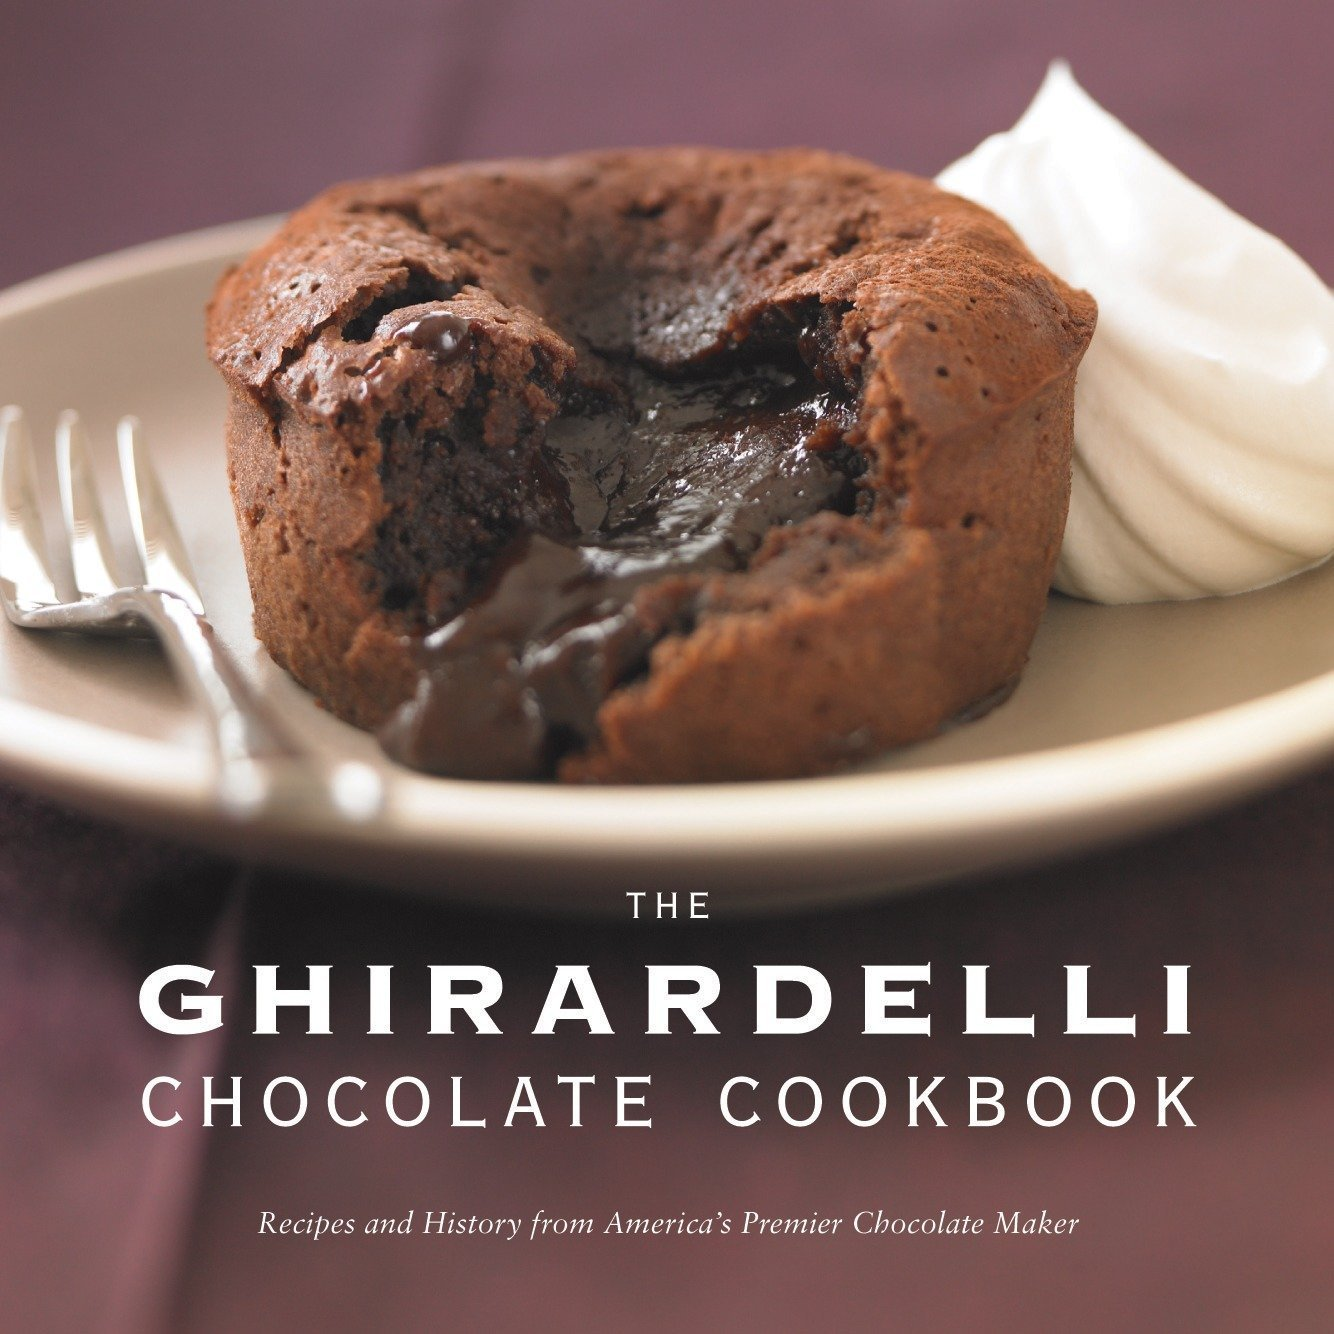 amazon the ghirardelli chocolate cookbook recipes and history